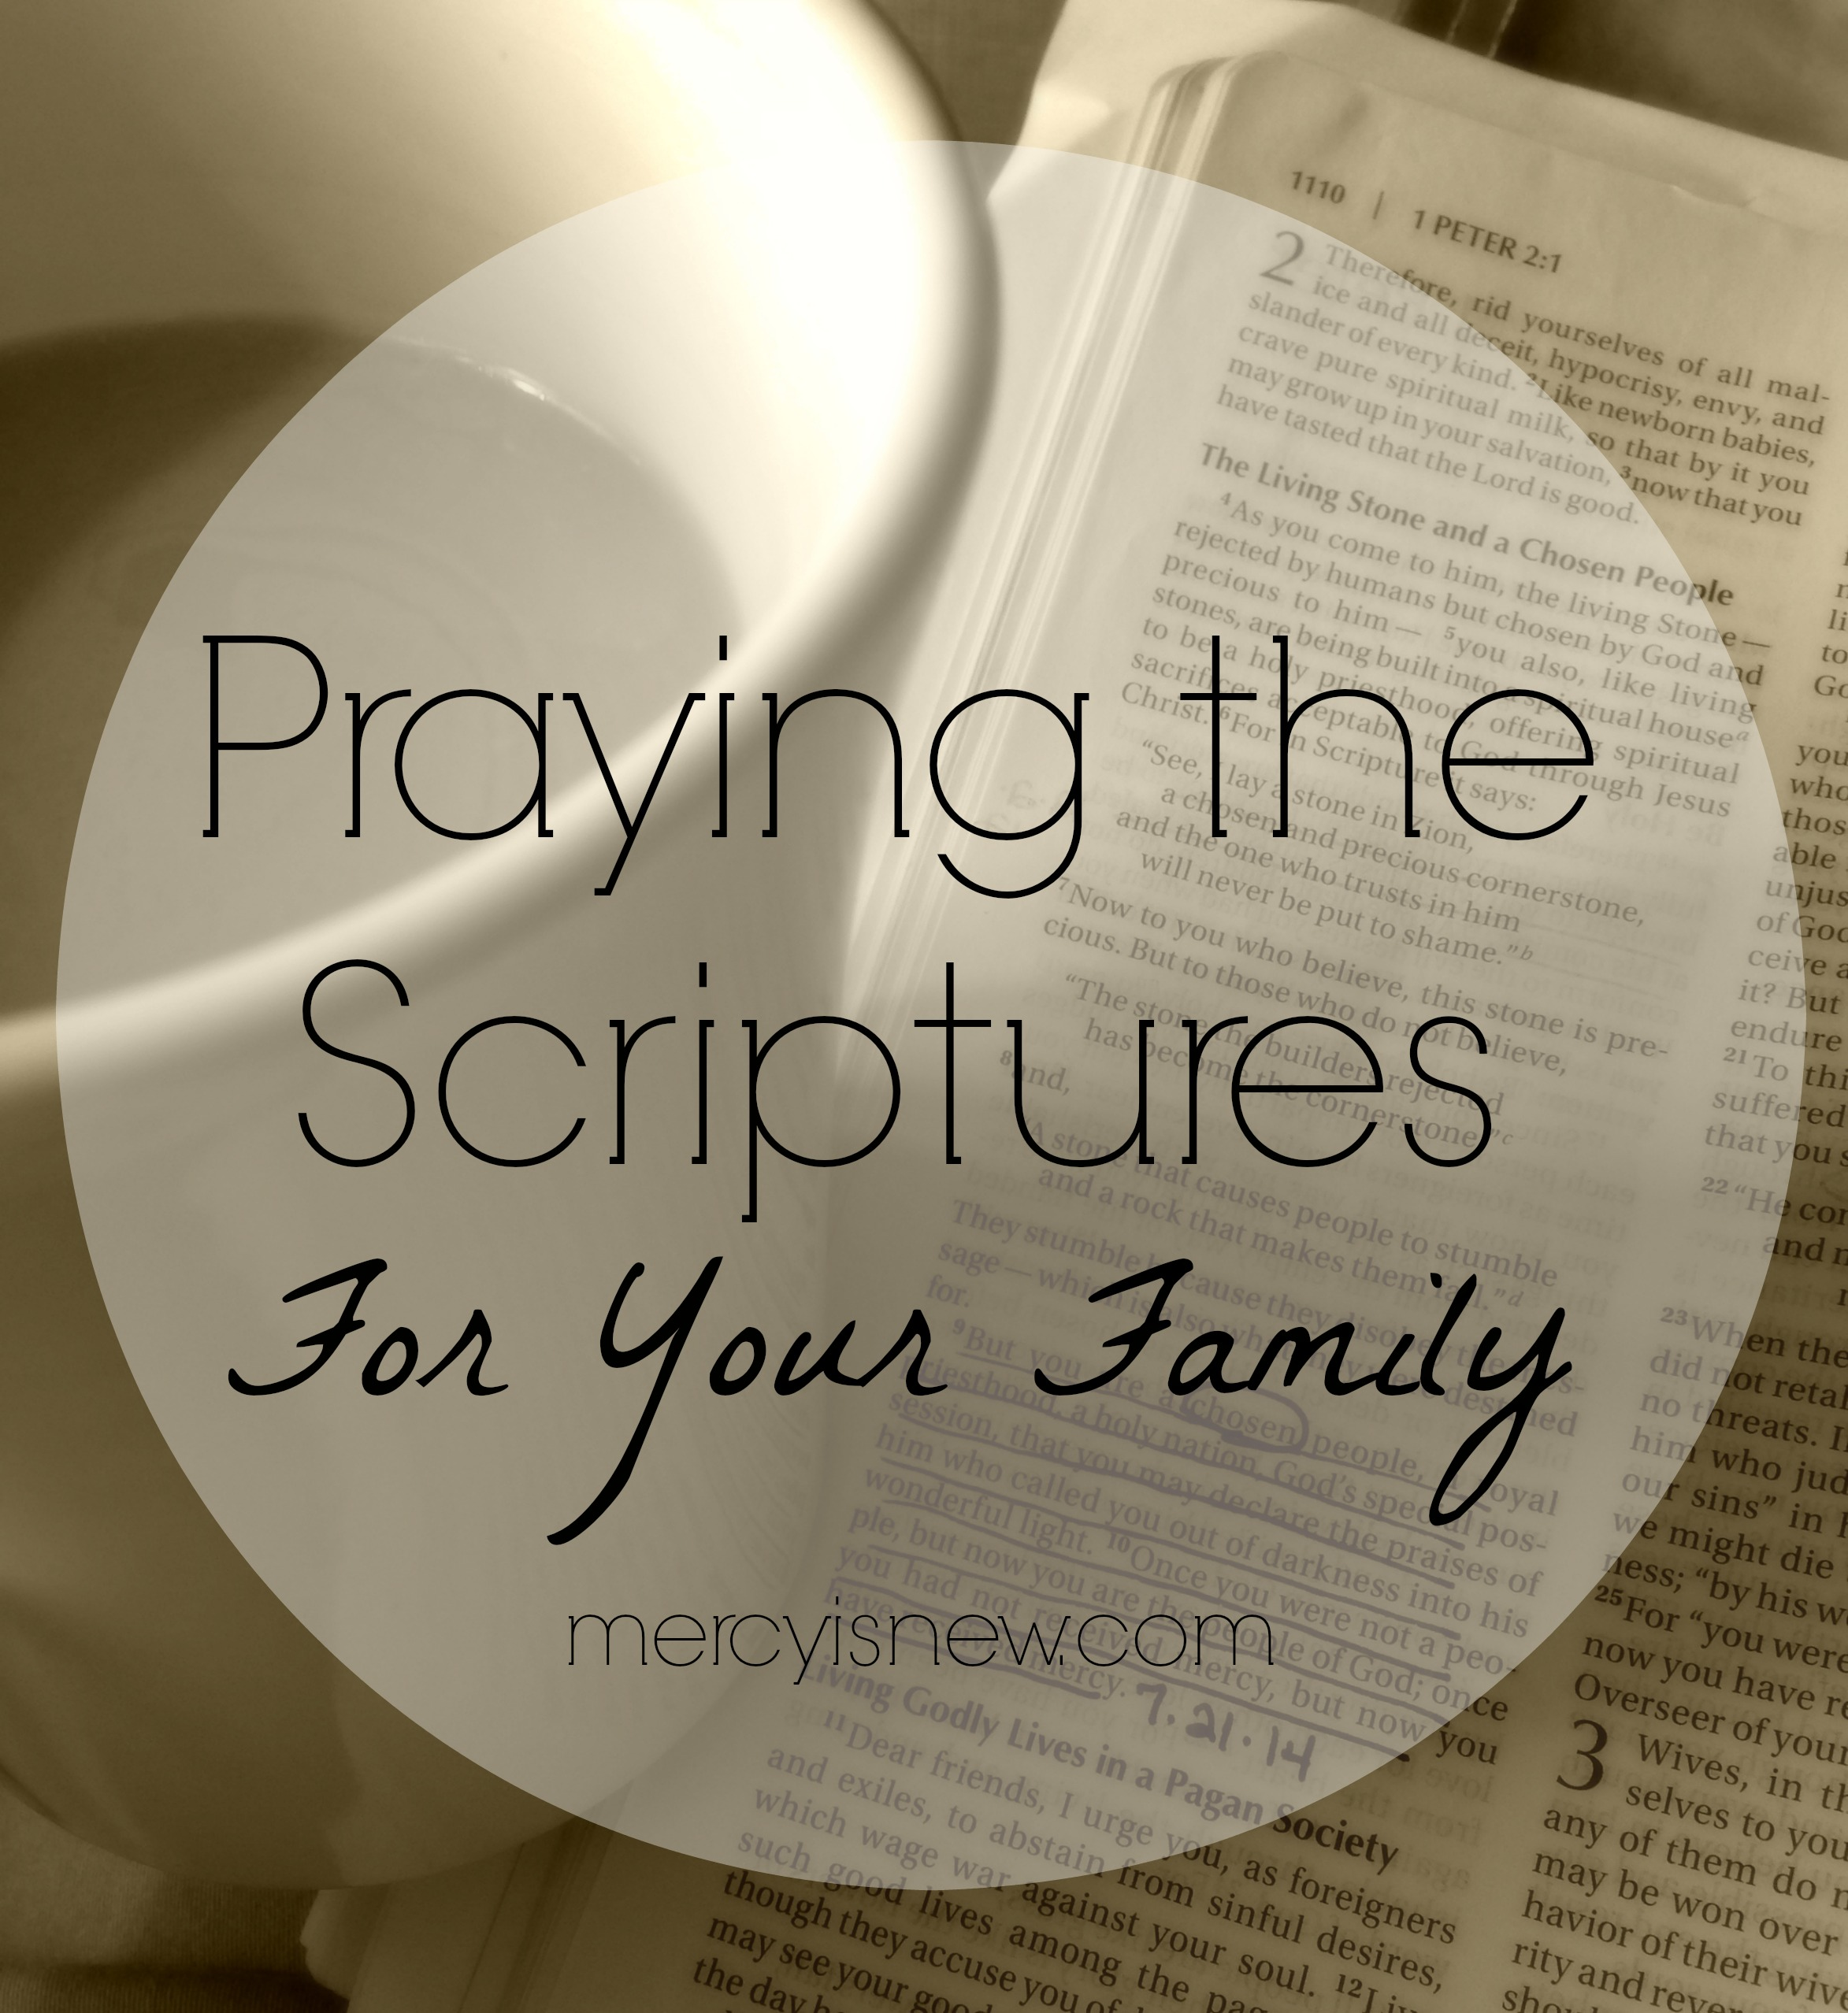 Prayer Quotes For Death In Family: Pray For My Family Quotes. QuotesGram